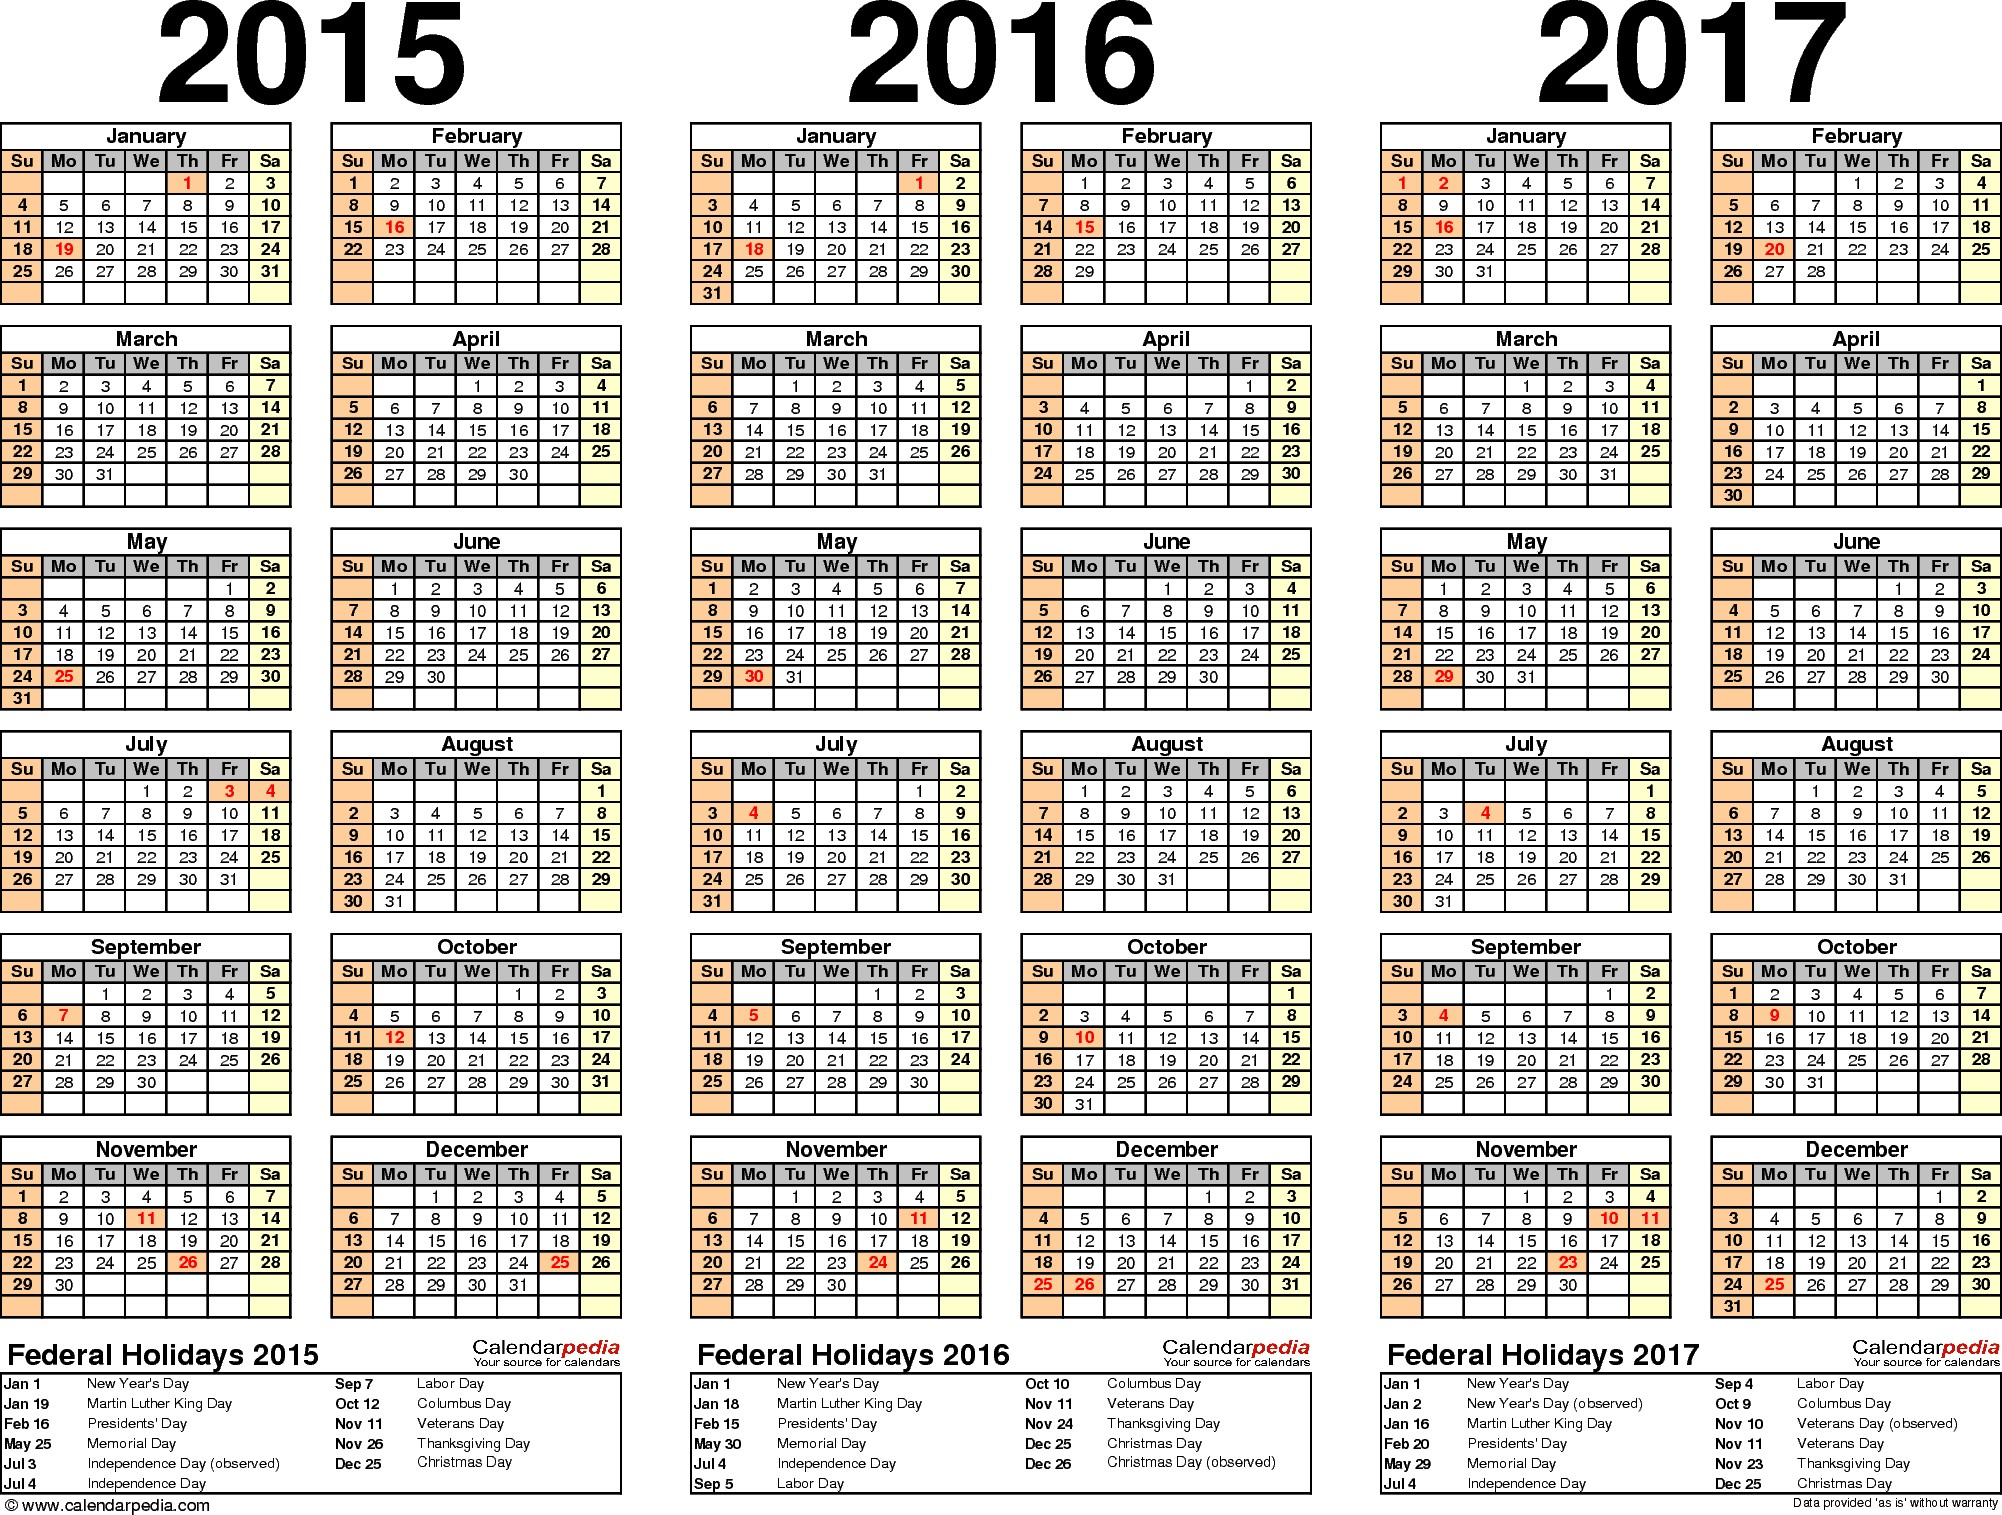 March Calendar Starting Monday Mejores Y Más Novedosos 2015 2016 2017 Calendar 4 Three Year Printable Pdf Calendars Of March Calendar Starting Monday Recientes 2015 2016 2017 Calendar 4 Three Year Printable Pdf Calendars